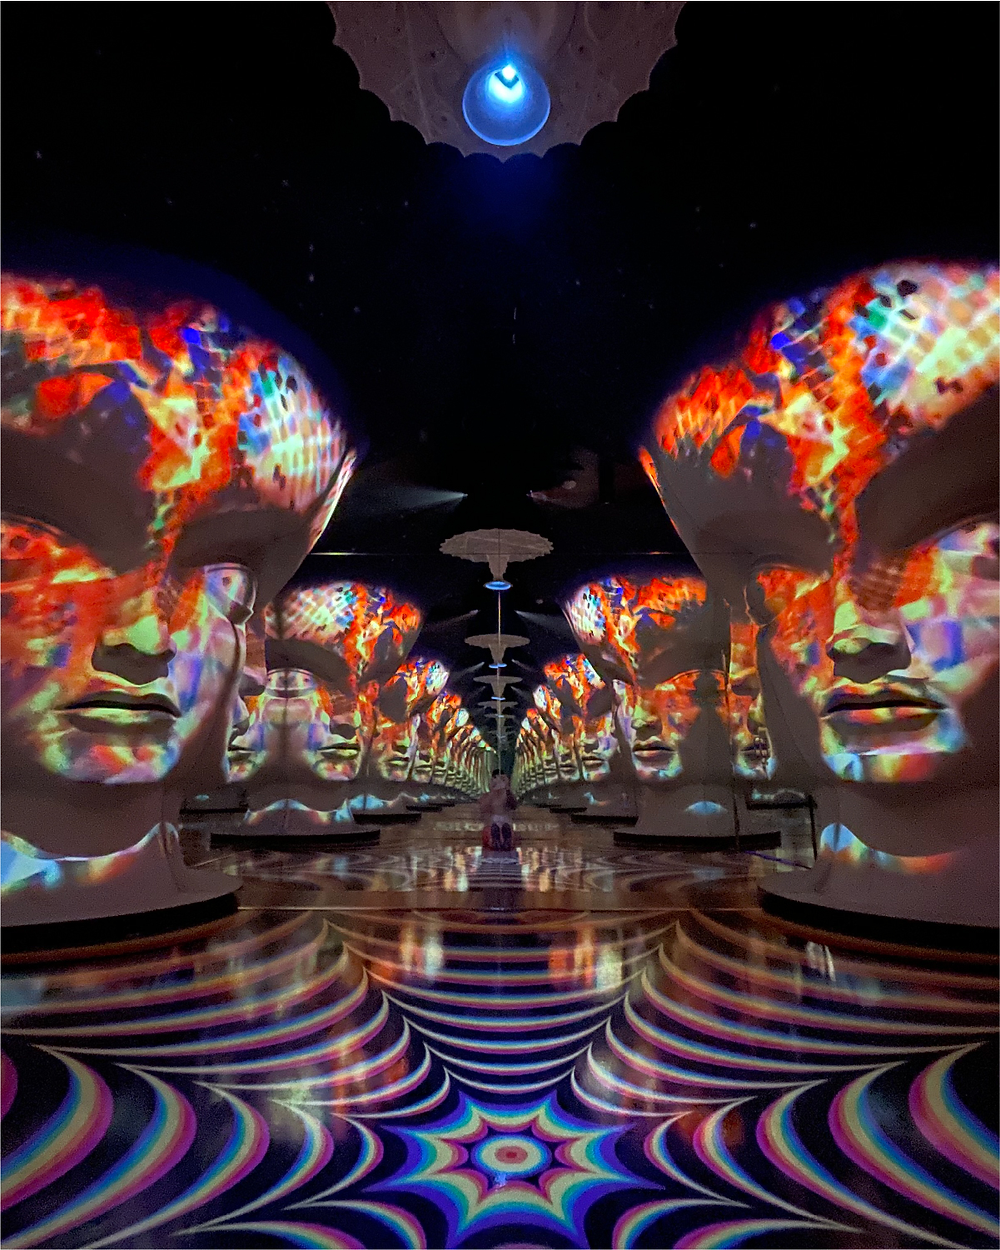 An exhibit at Meow Wolf Omega Mart, featuring a series of psychedelic faces projected mapped onto walls.